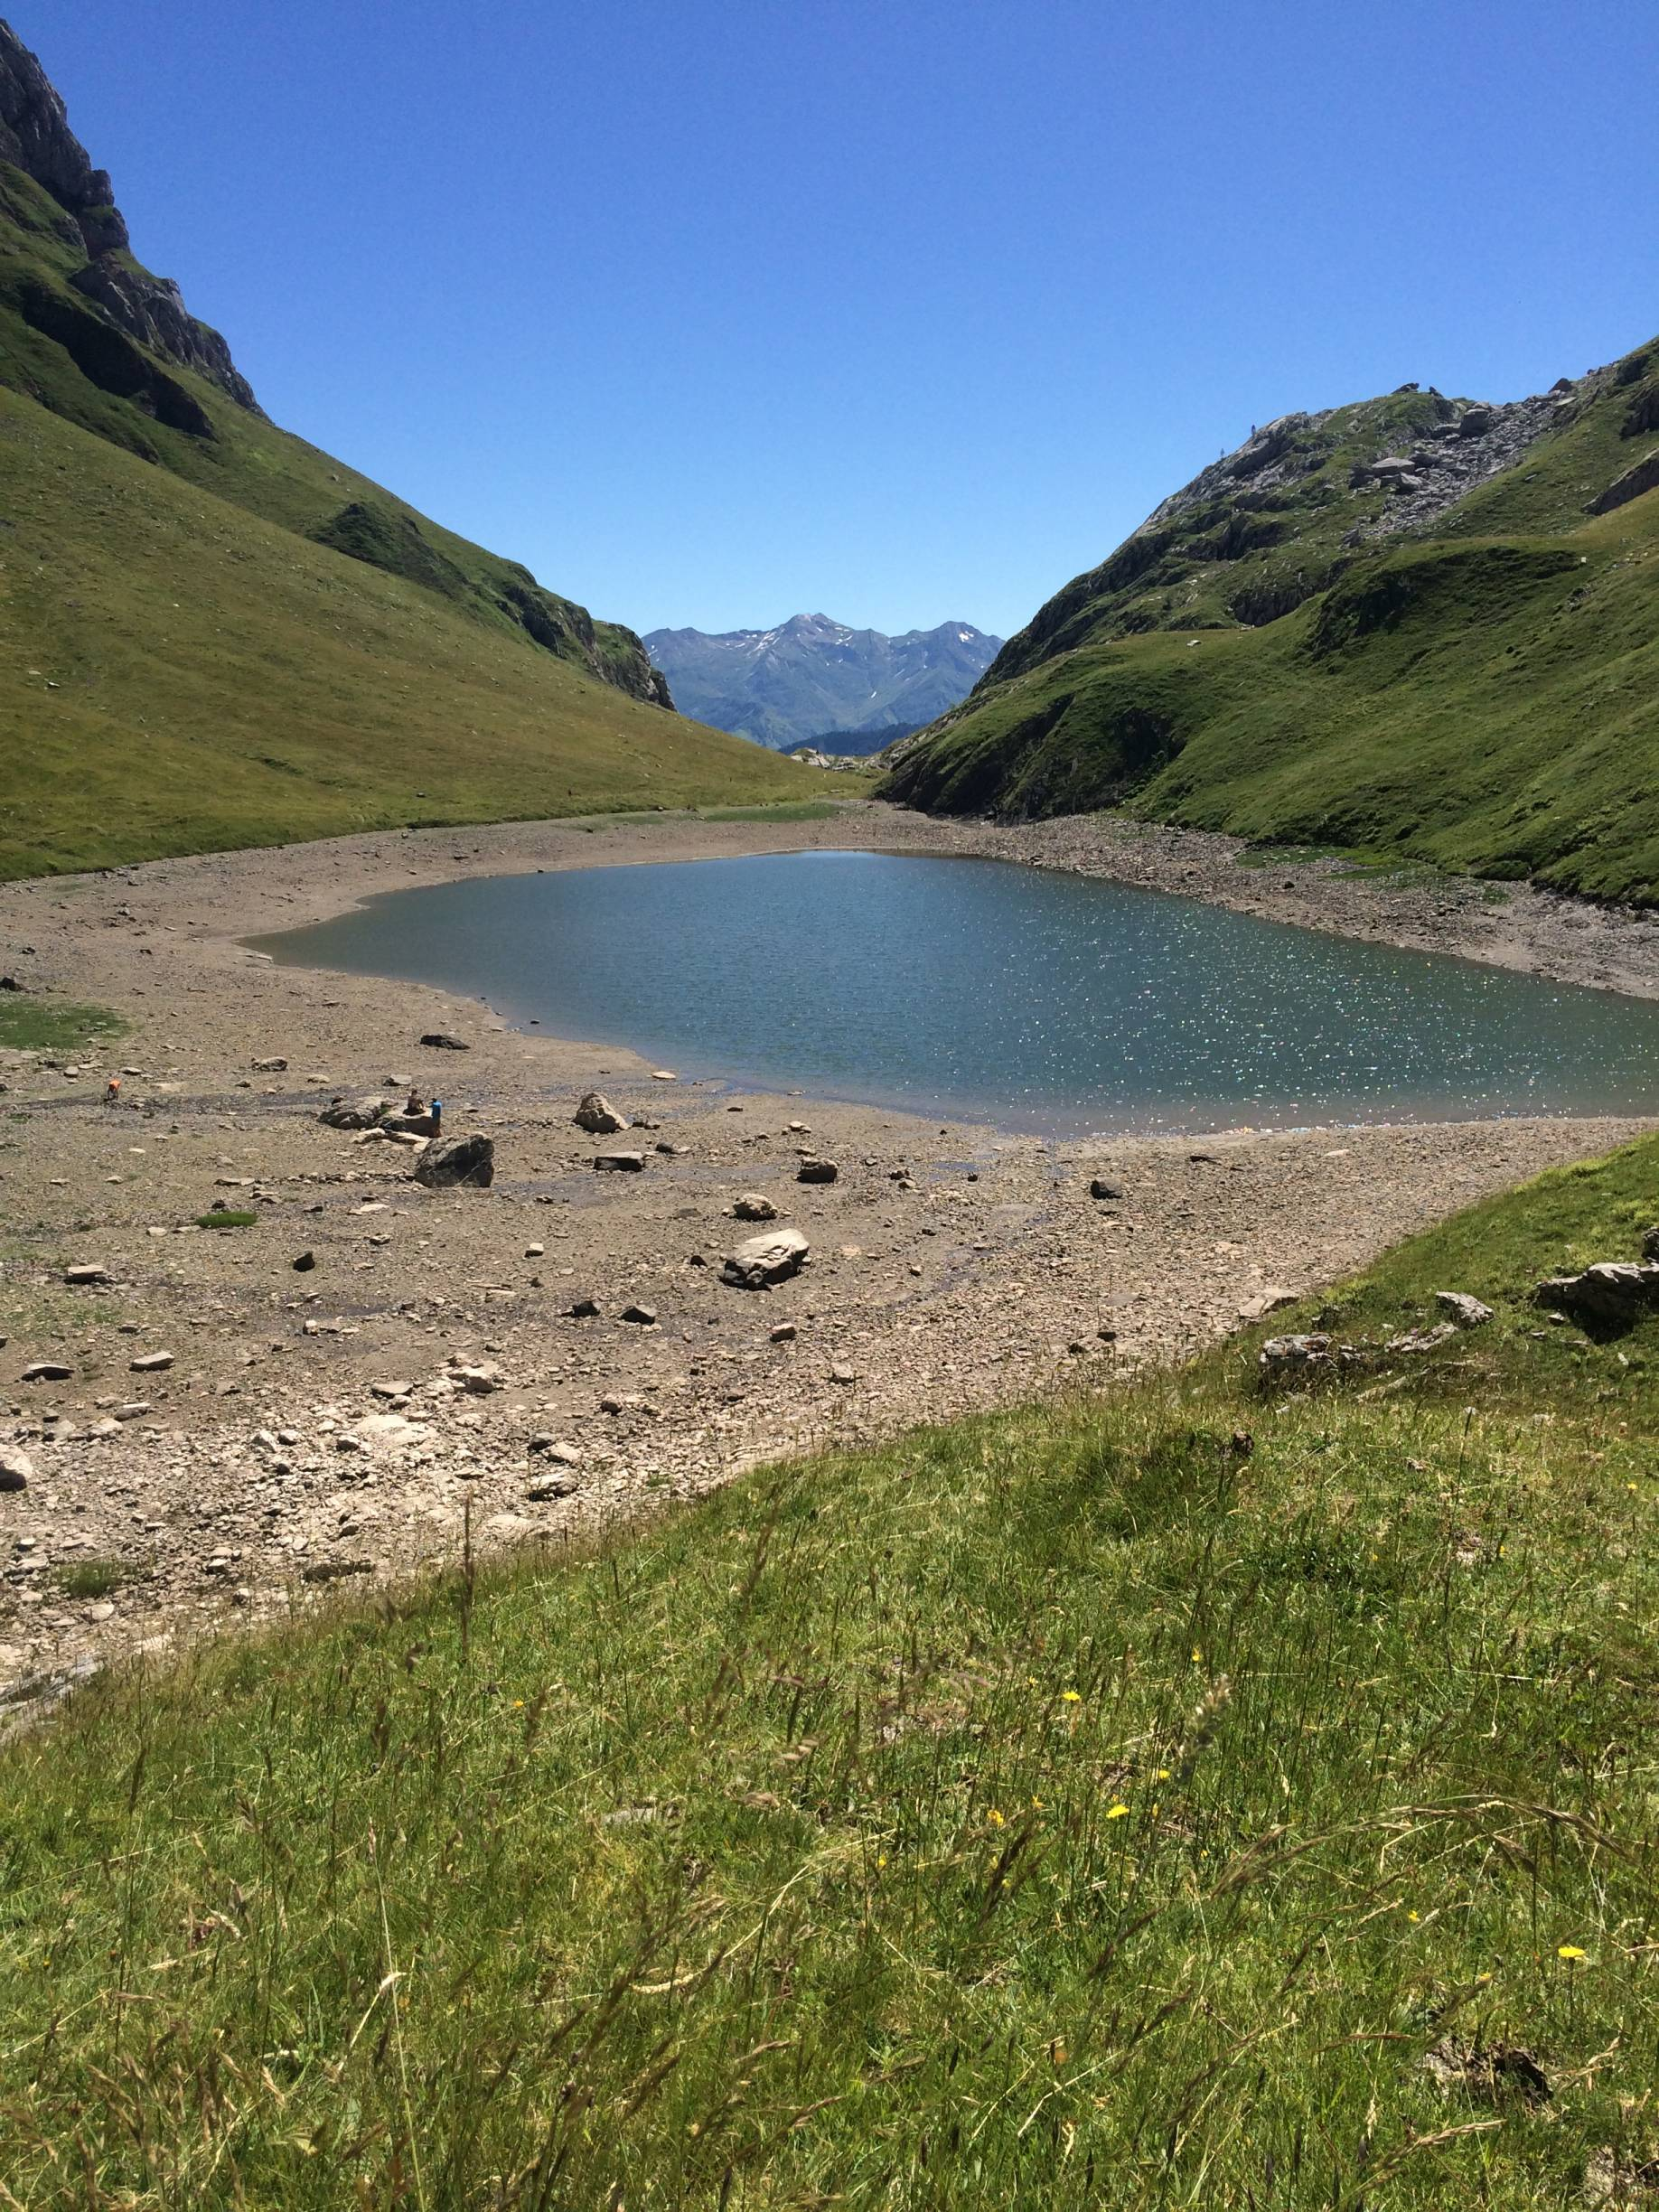 Photo 3: A la découverte du lac de Lhurs